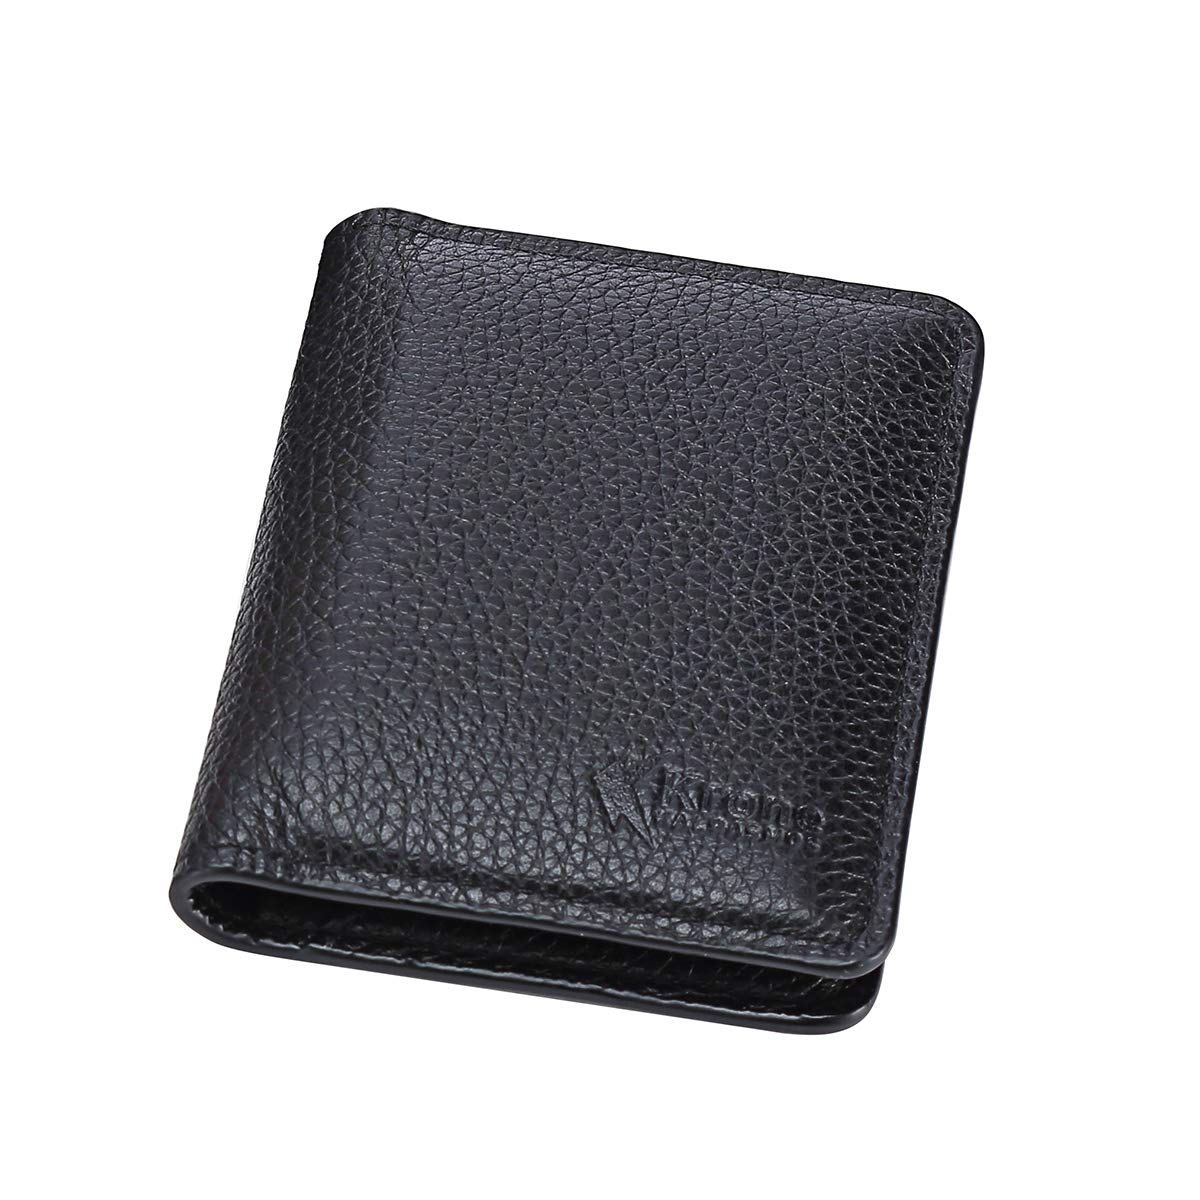 Practical Leather Credit Card Holder Money Cash Wallet Clip RFID